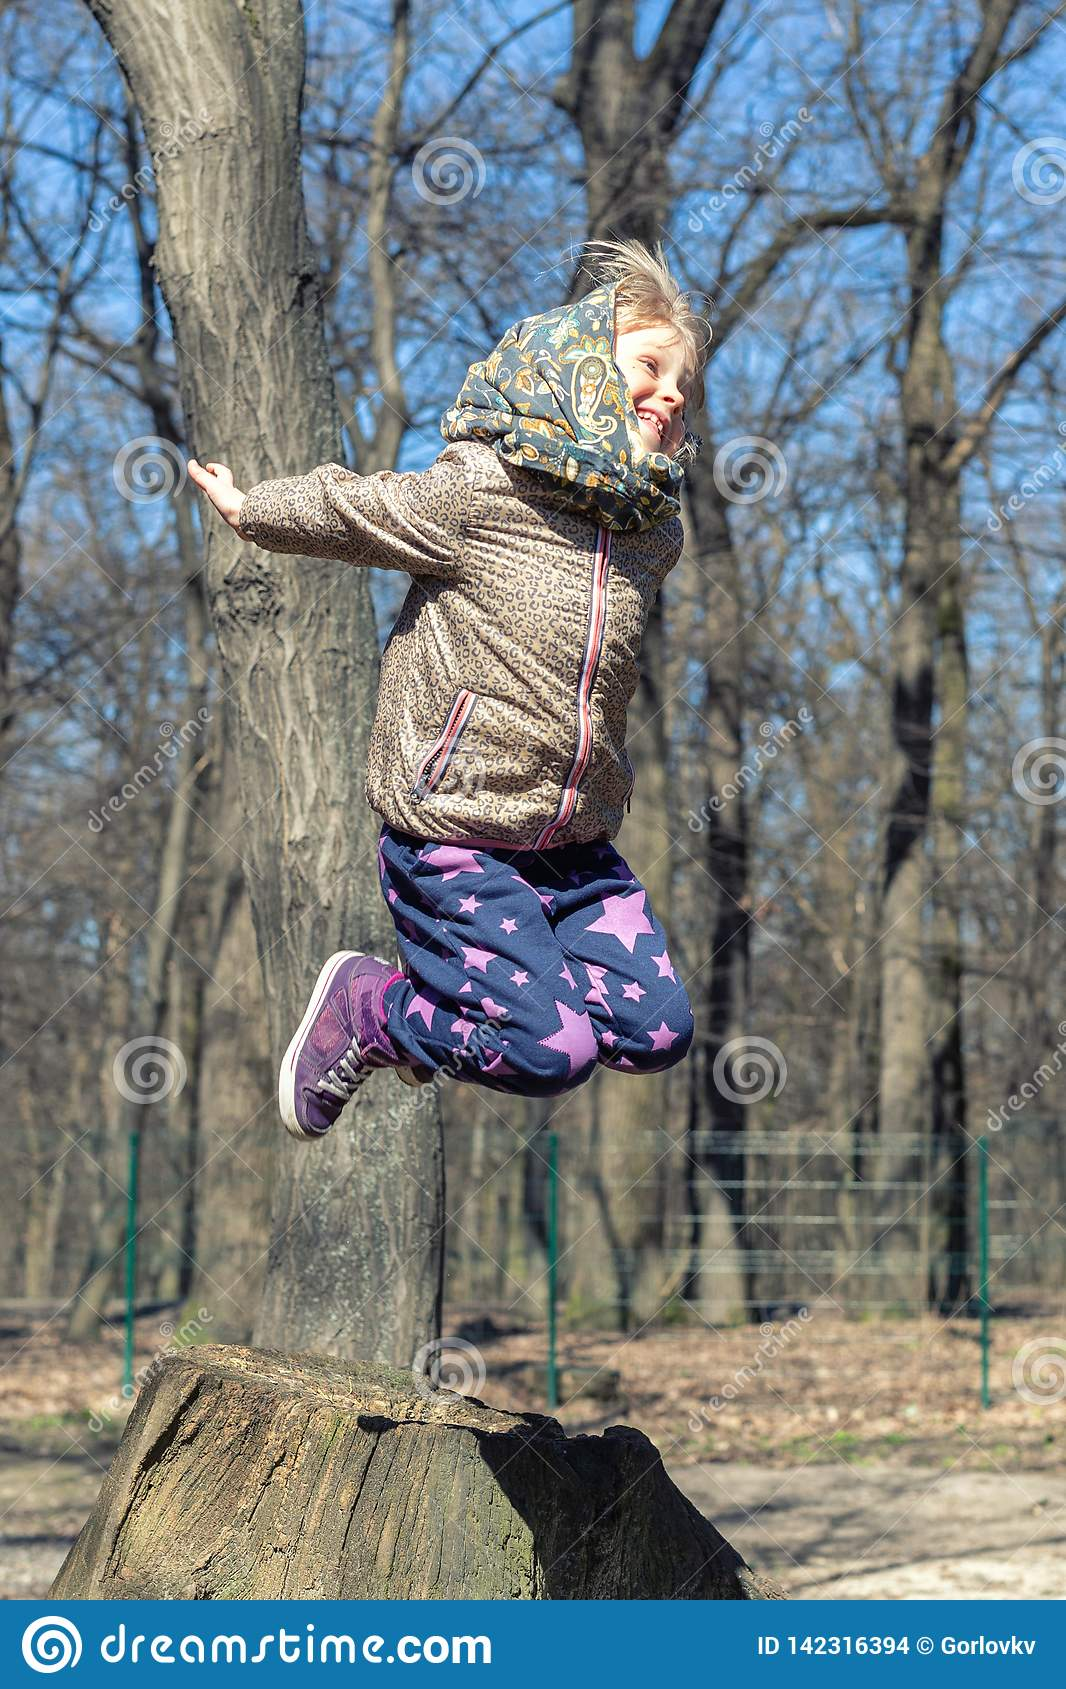 Cute little blond kid girl having fun outdoors. Child in casual sport wear and kerchief jumping high from tree stump in forest